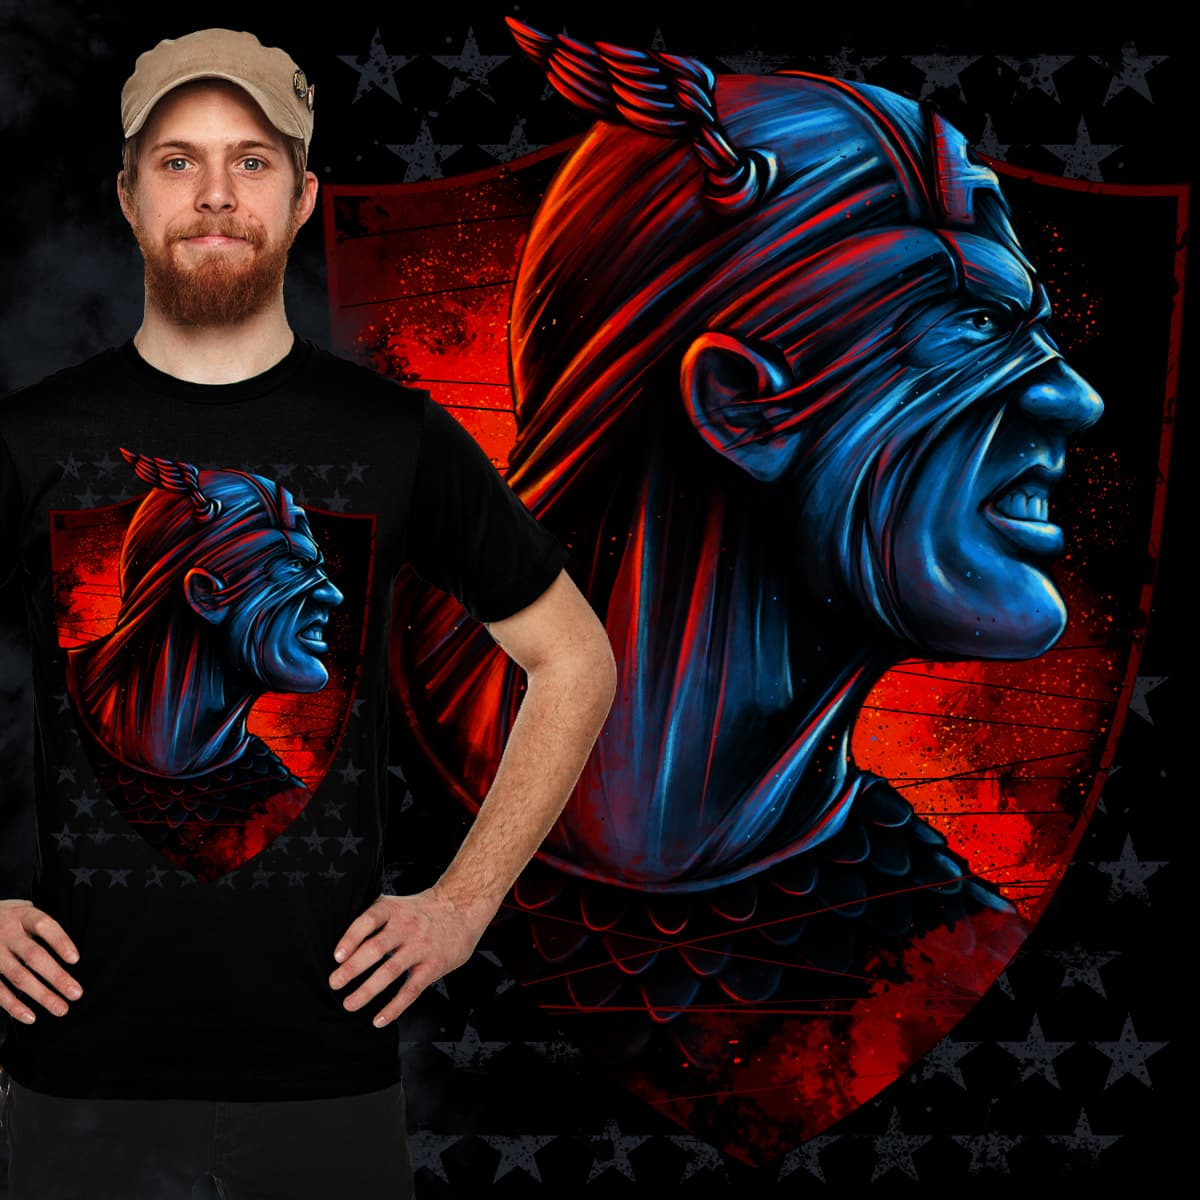 Heroic Intensity by Kristoval on Threadless